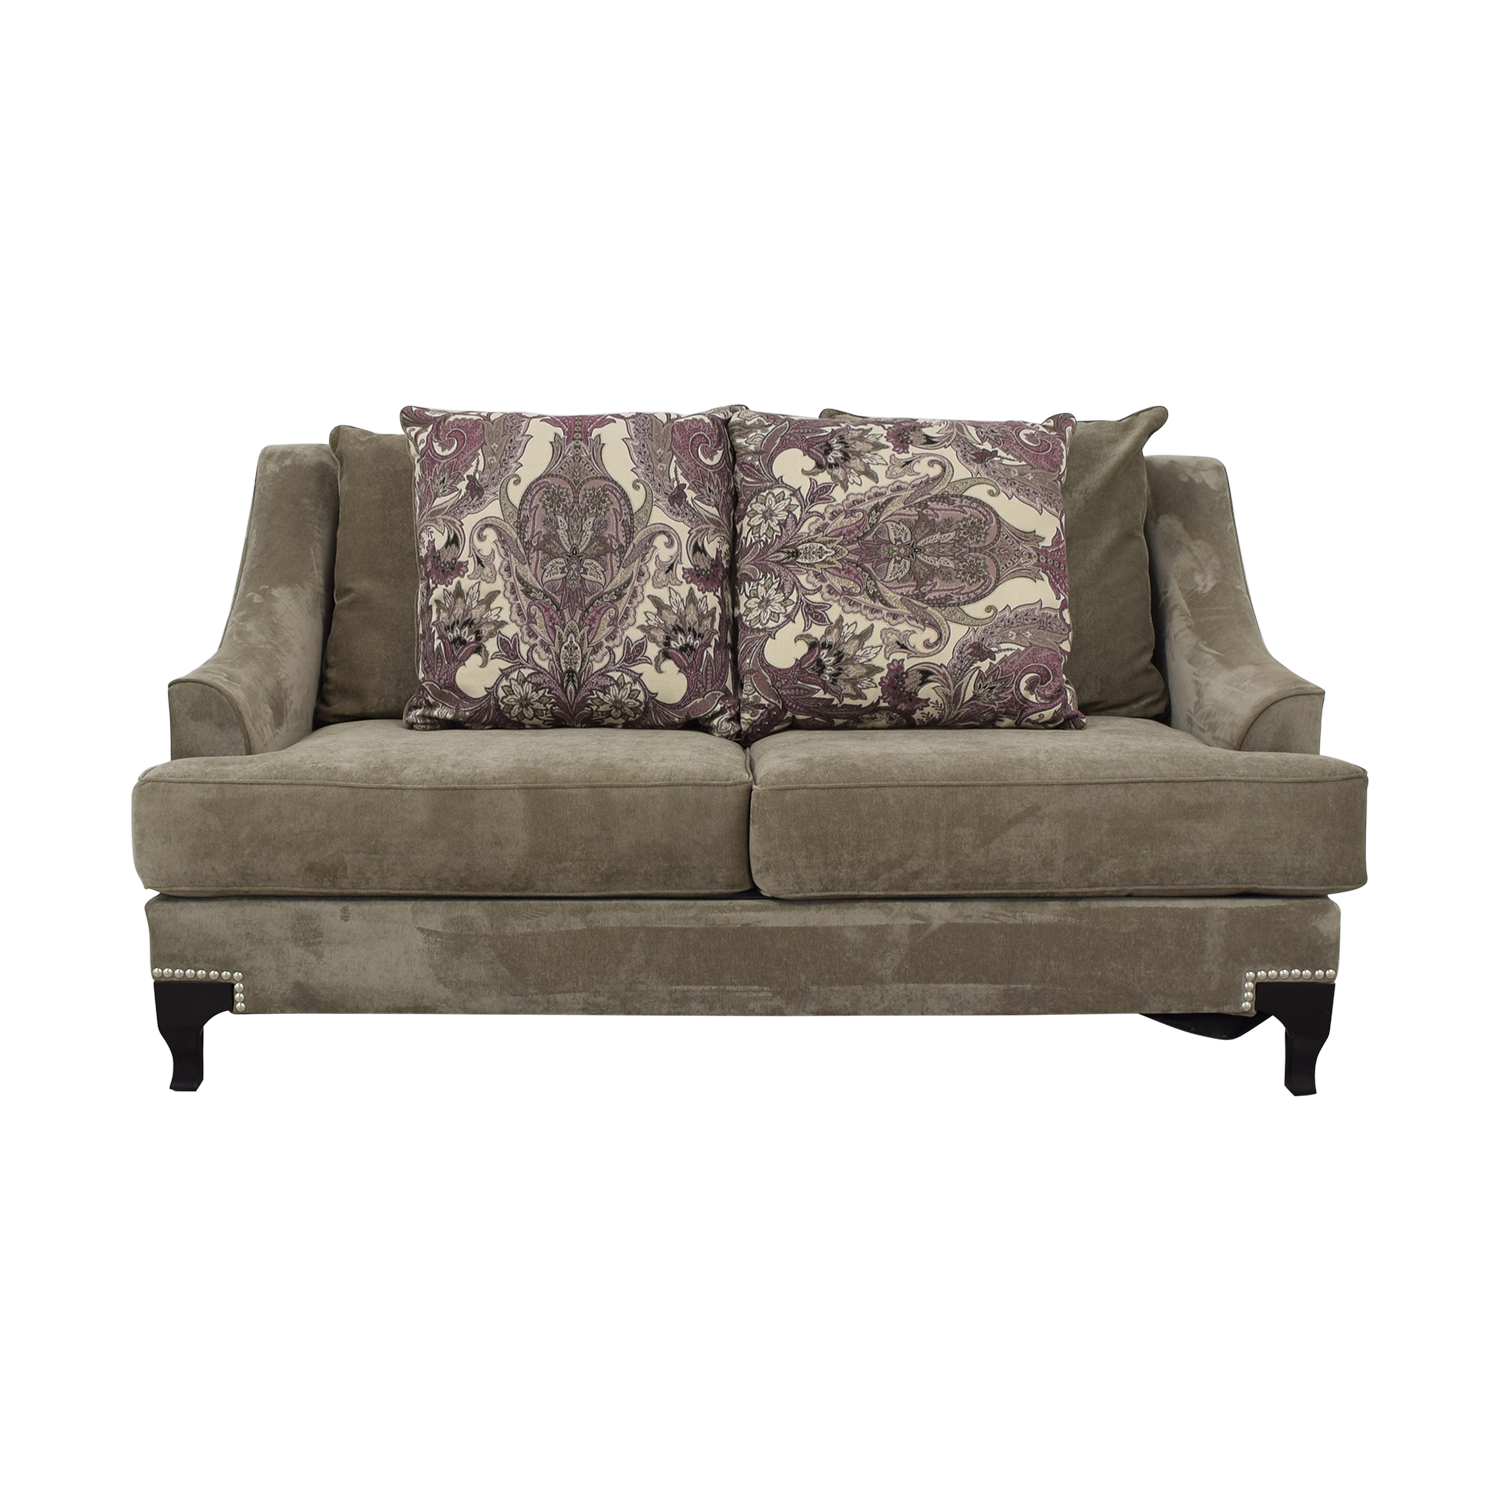 Furniture of America Furniture of America Loveseat second hand